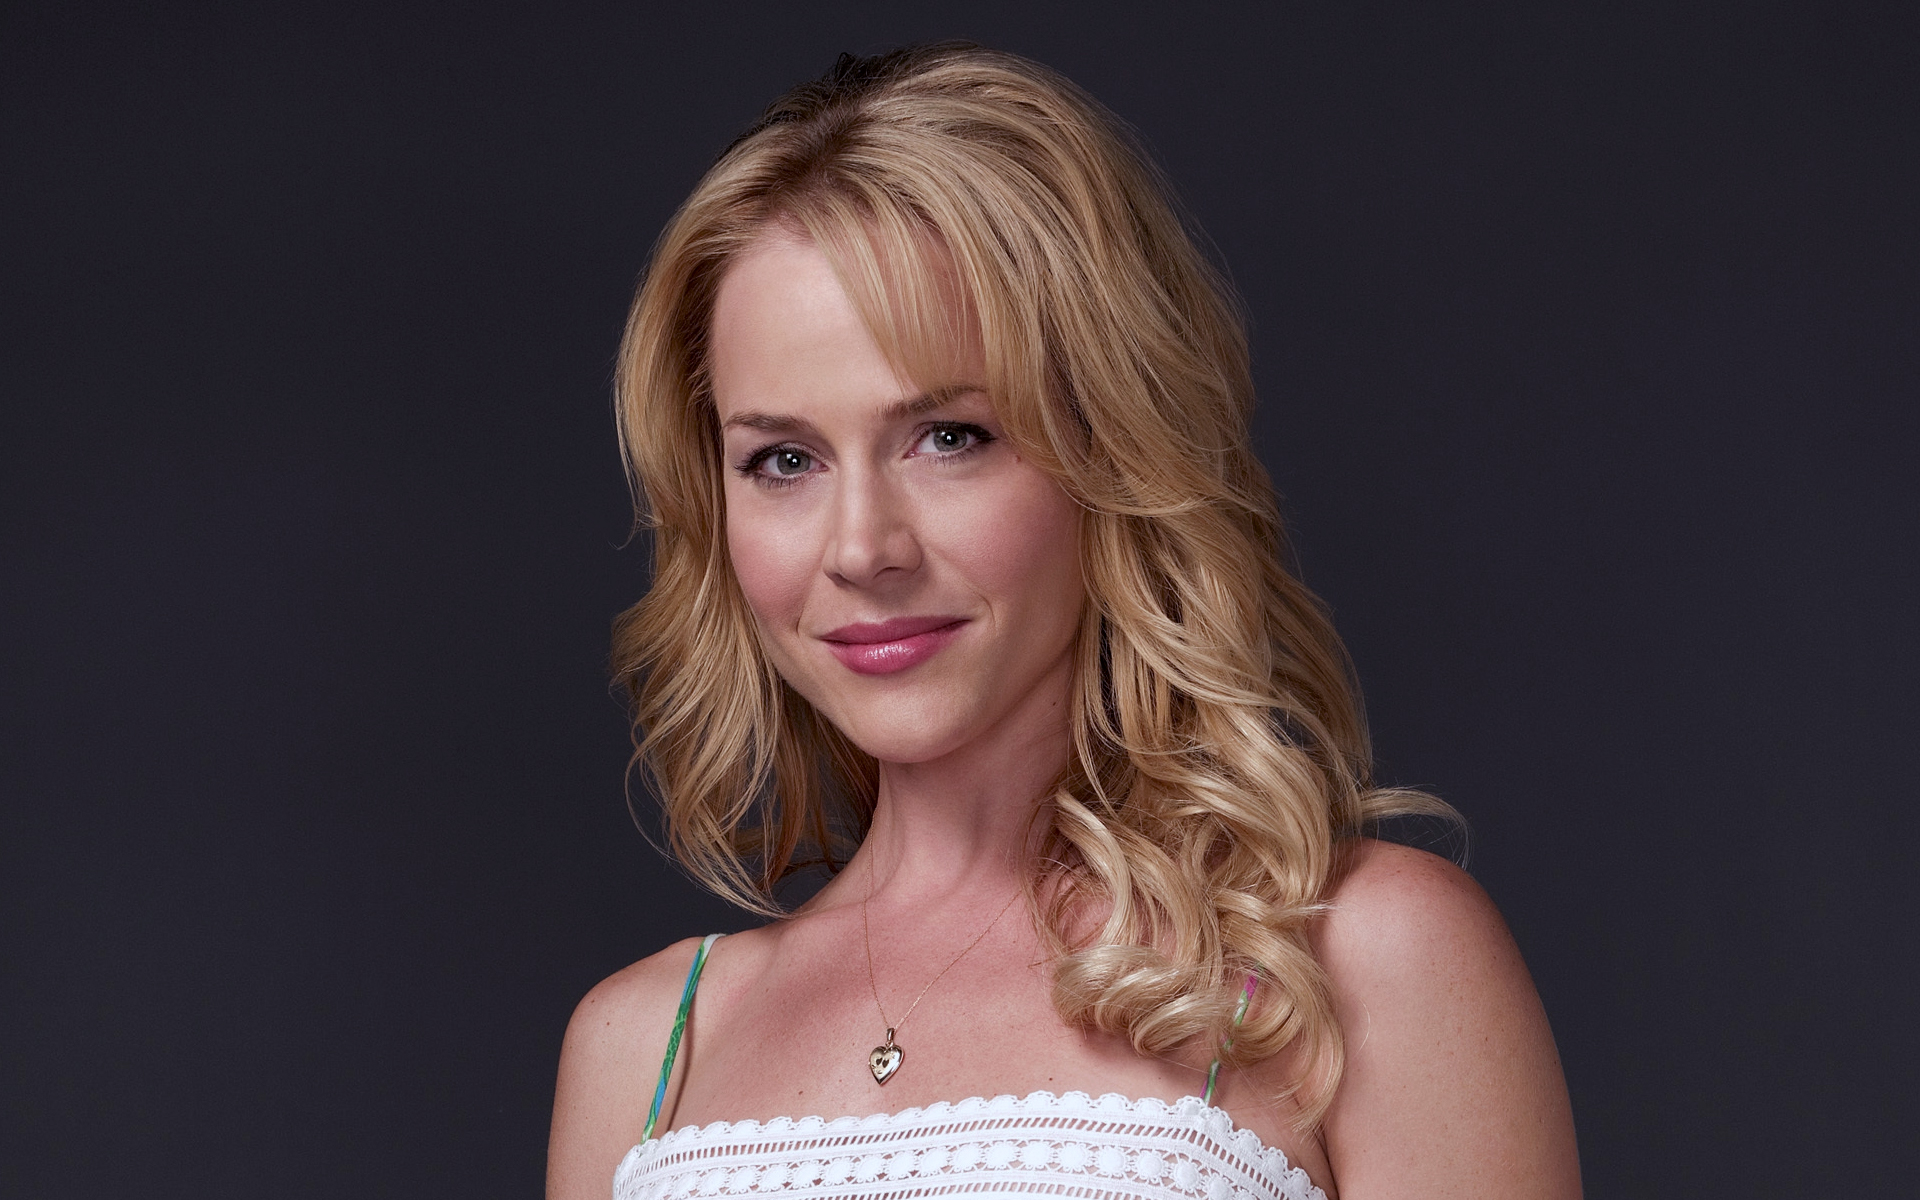 julie benz wallpapers high quality download free